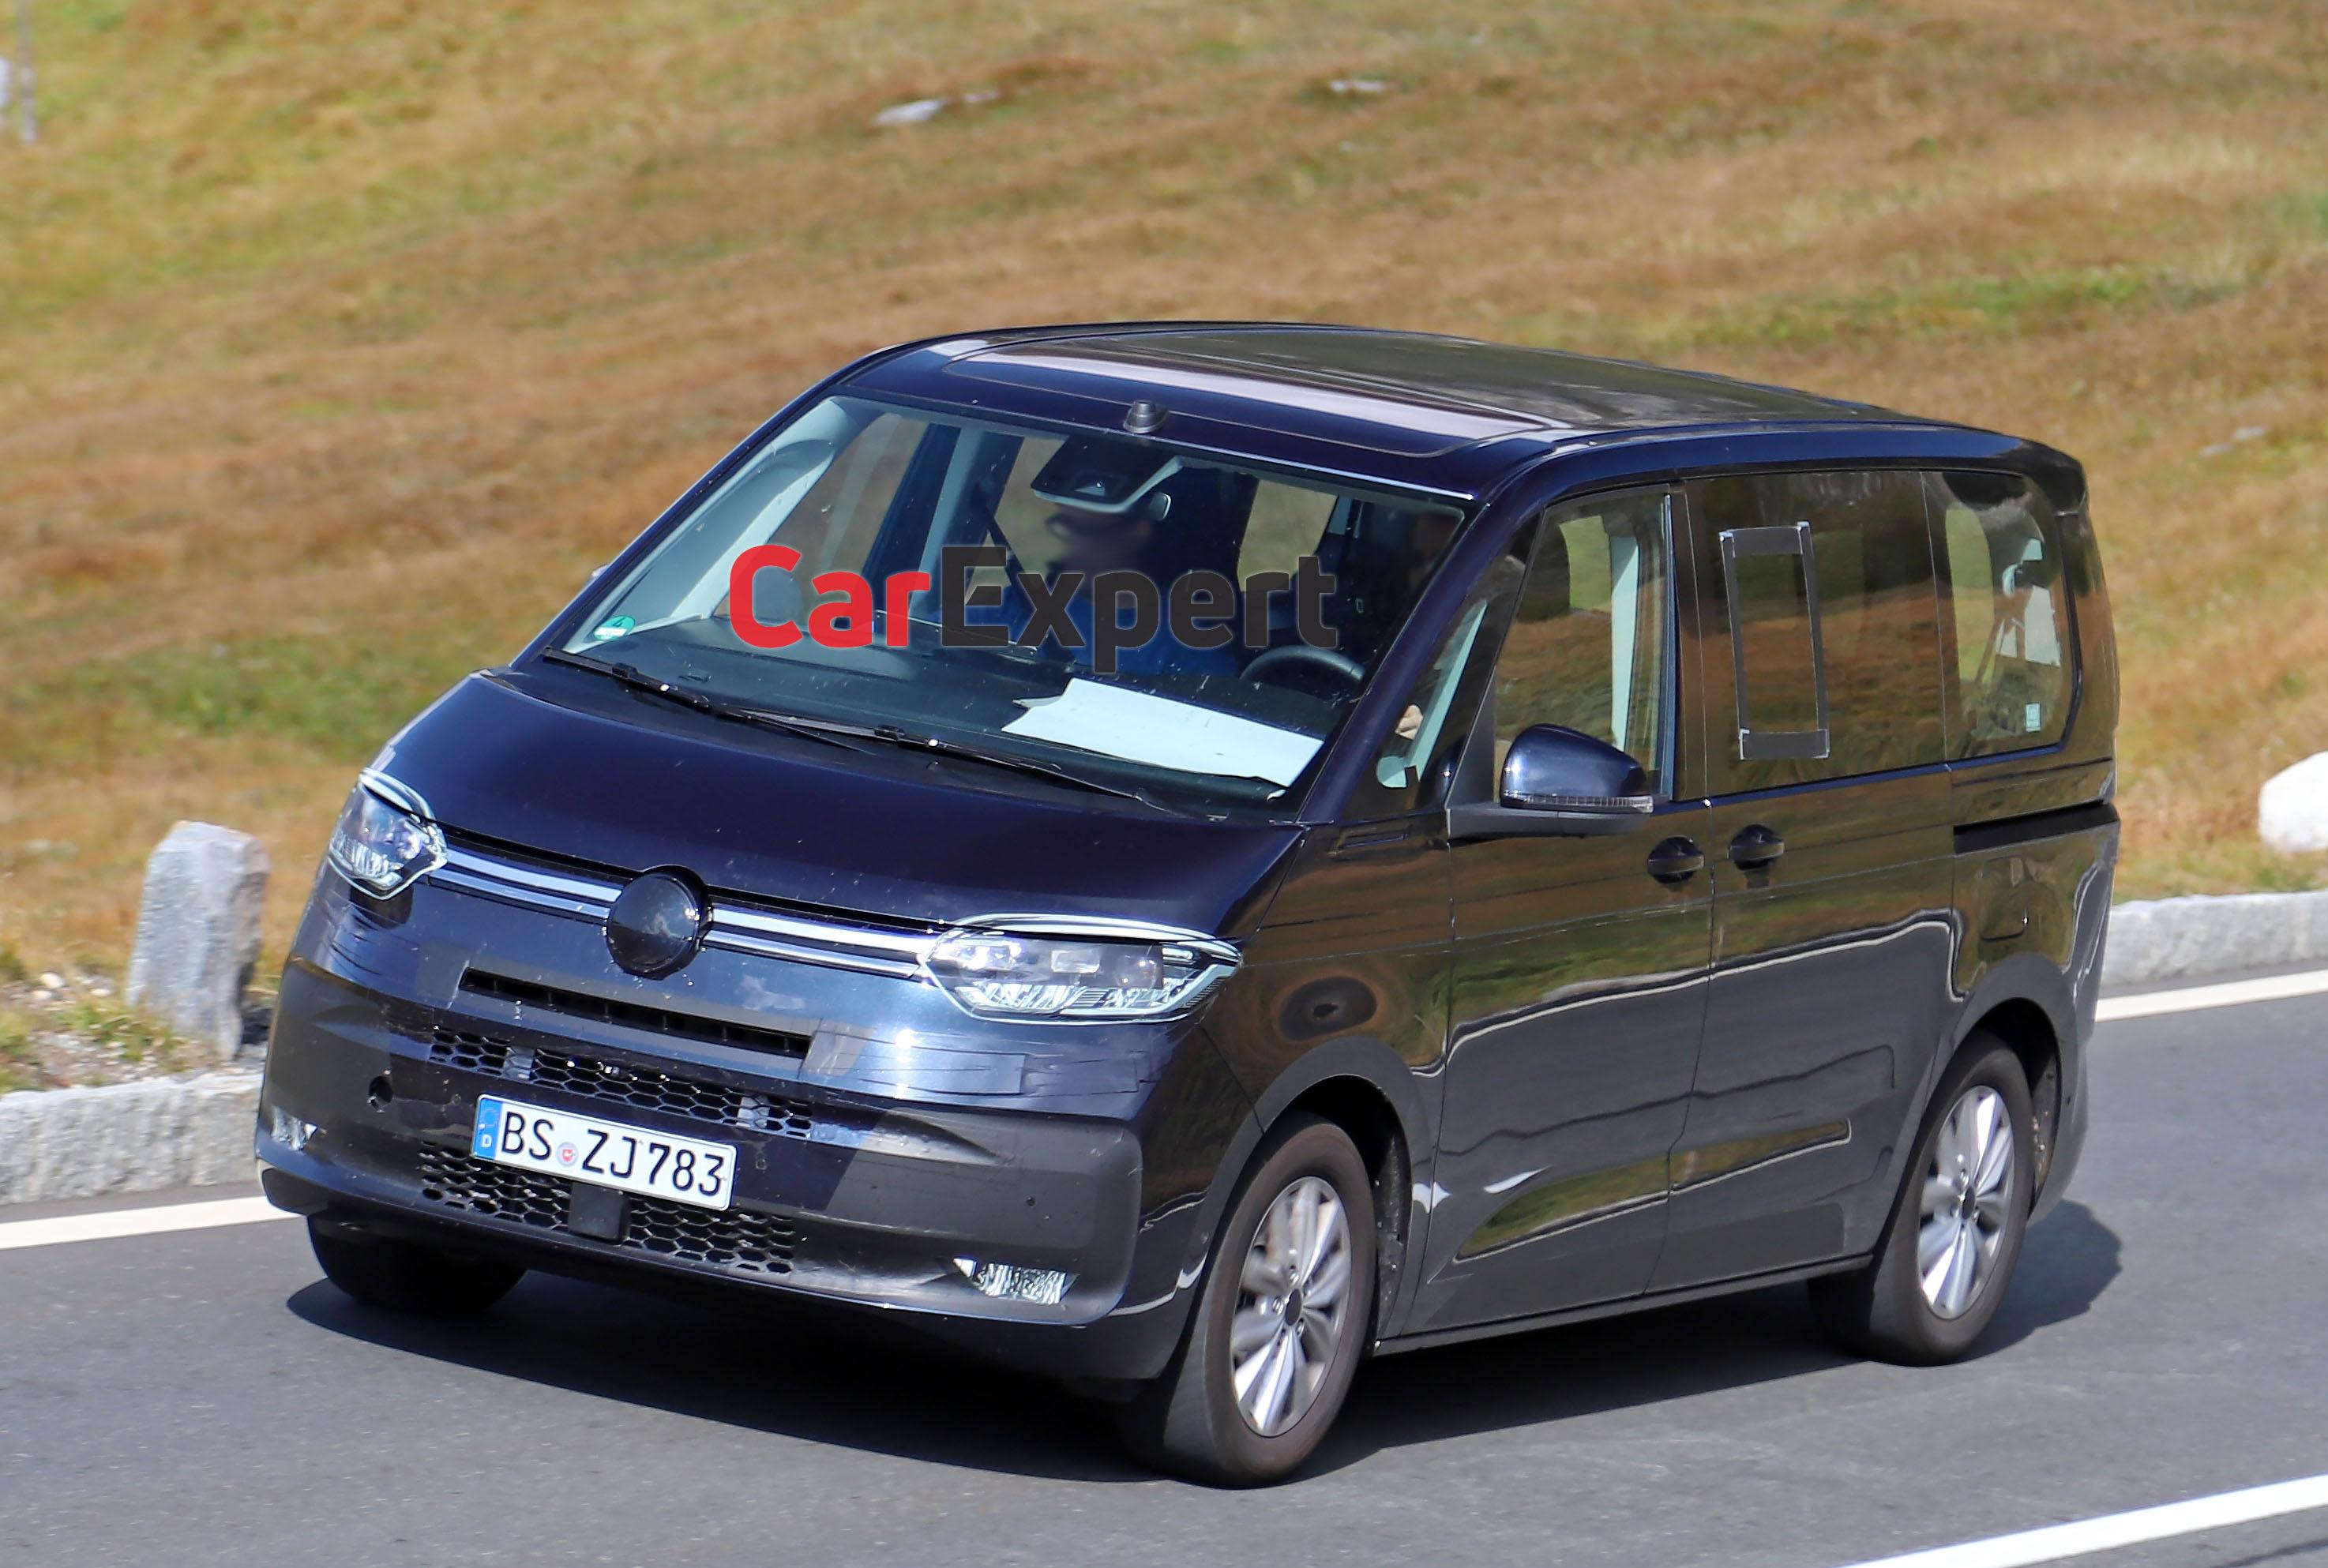 2022 Volkswagen T7 Multivan spied inside and out